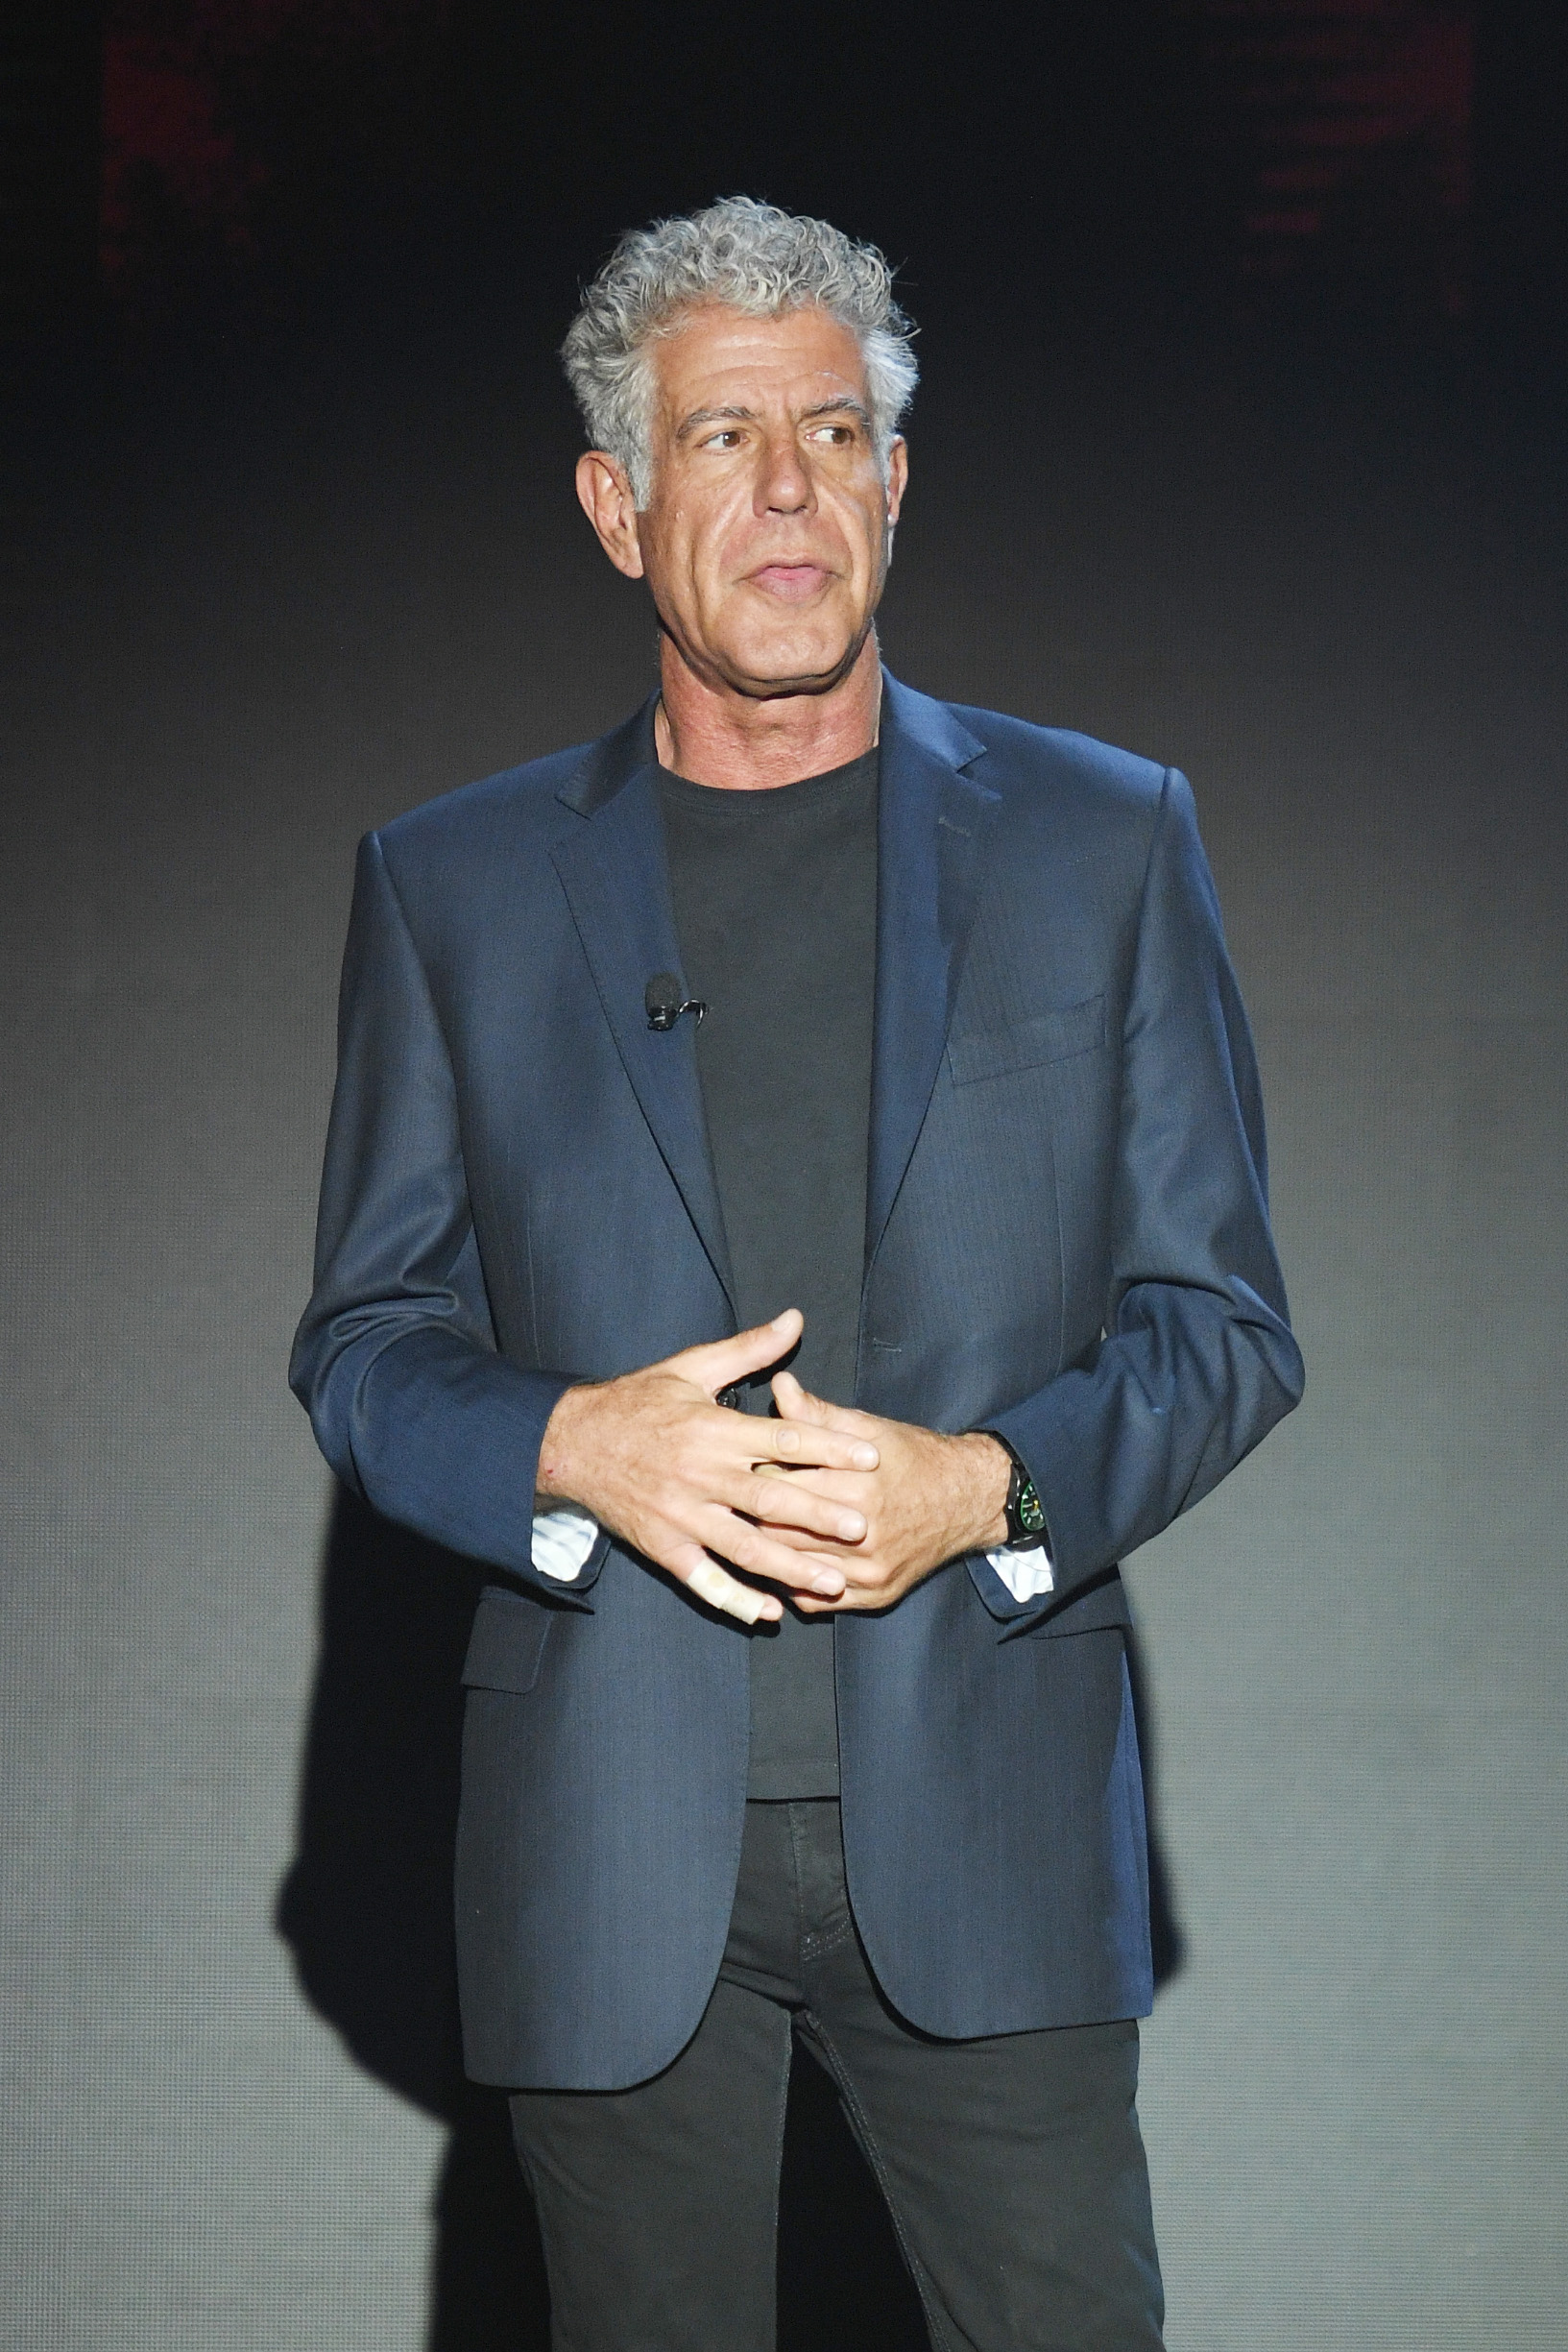 NEW YORK, NY - MAY 17:  Anthony Bourdain speaks onstage during the Turner Upfront 2017 show at The Theater at Madison Square Garden on May 17, 2017 in New York City. 26617_003  (Photo by Dimitrios Kambouris/Getty Images)